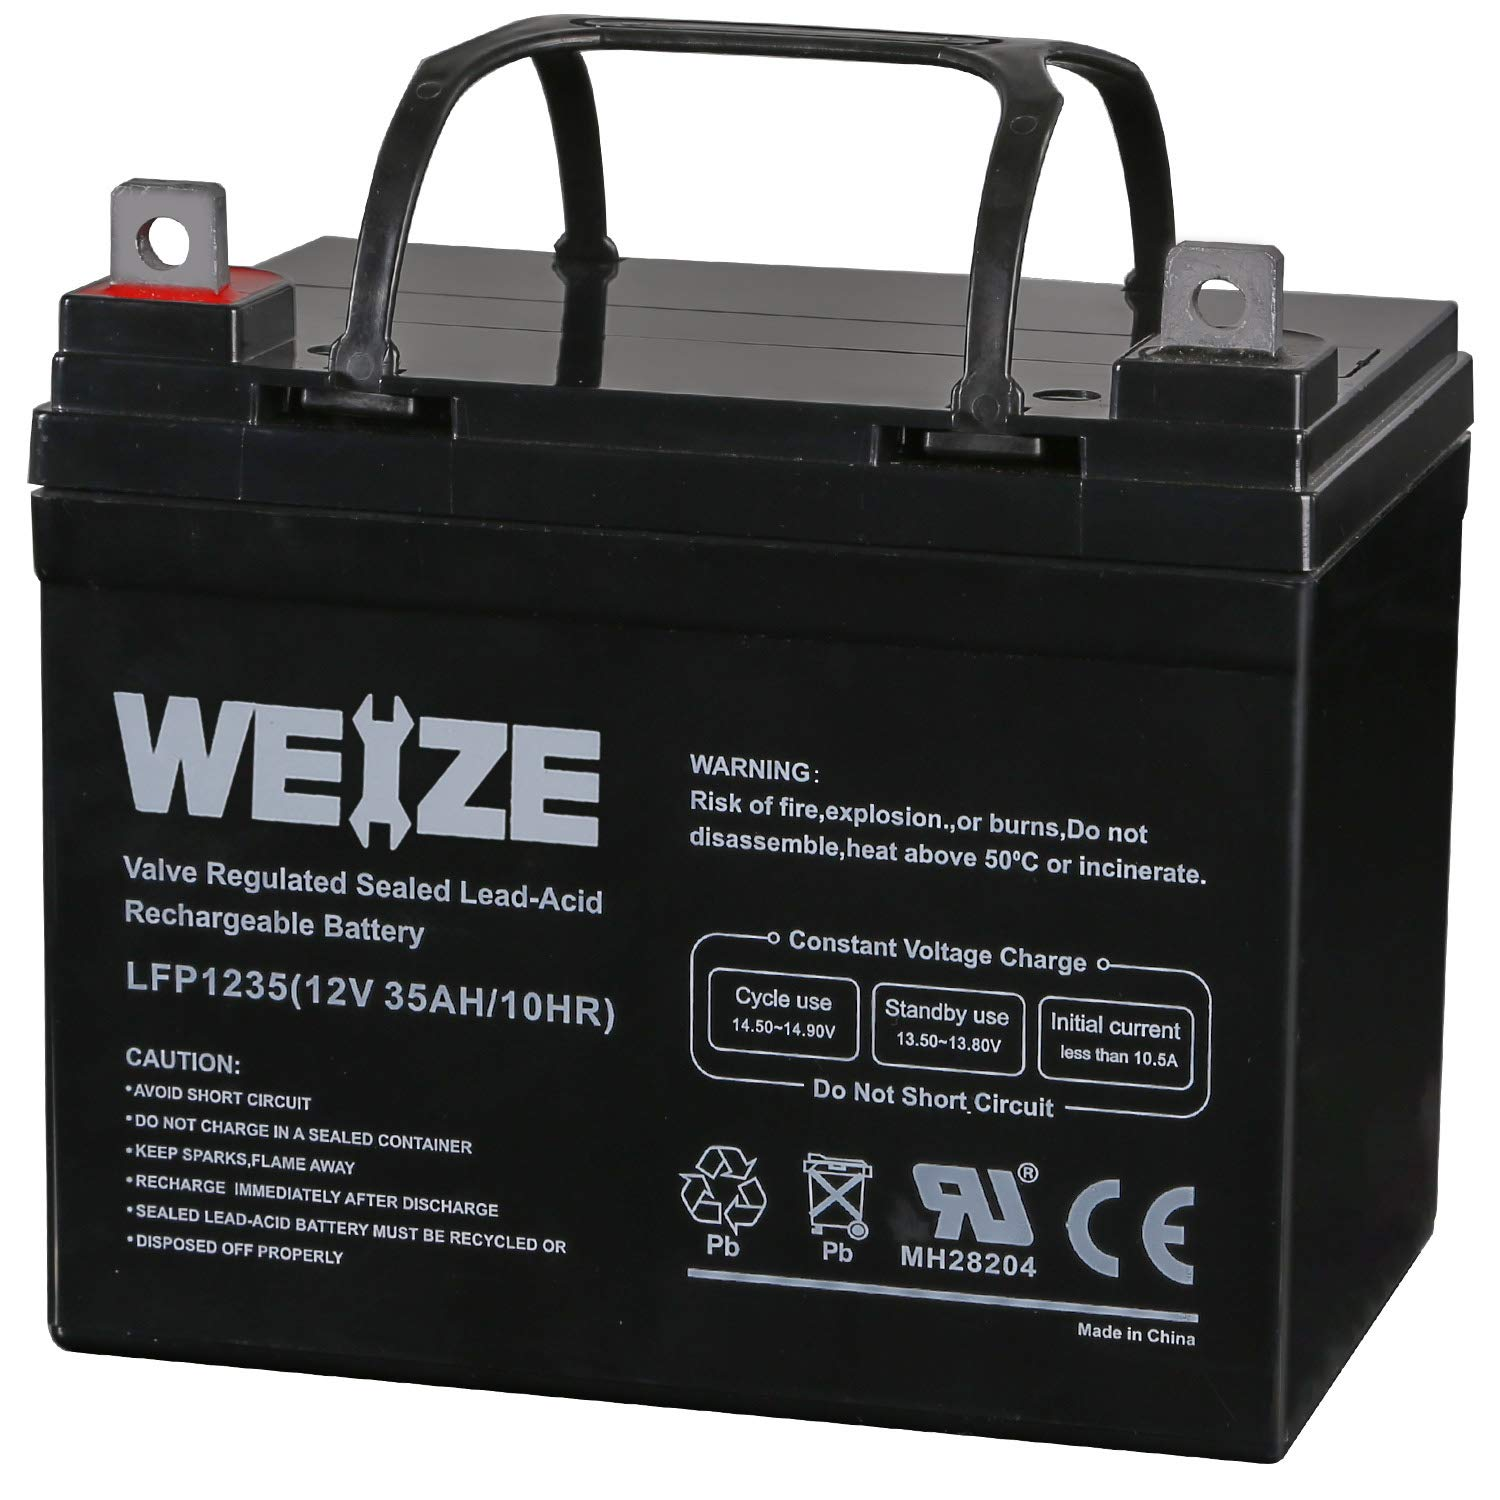 Weize 12V 35AH Rechargeable SLA Deep Cycle AGM Battery Replaces 12 Volt 33AH, 34AH, 36AH